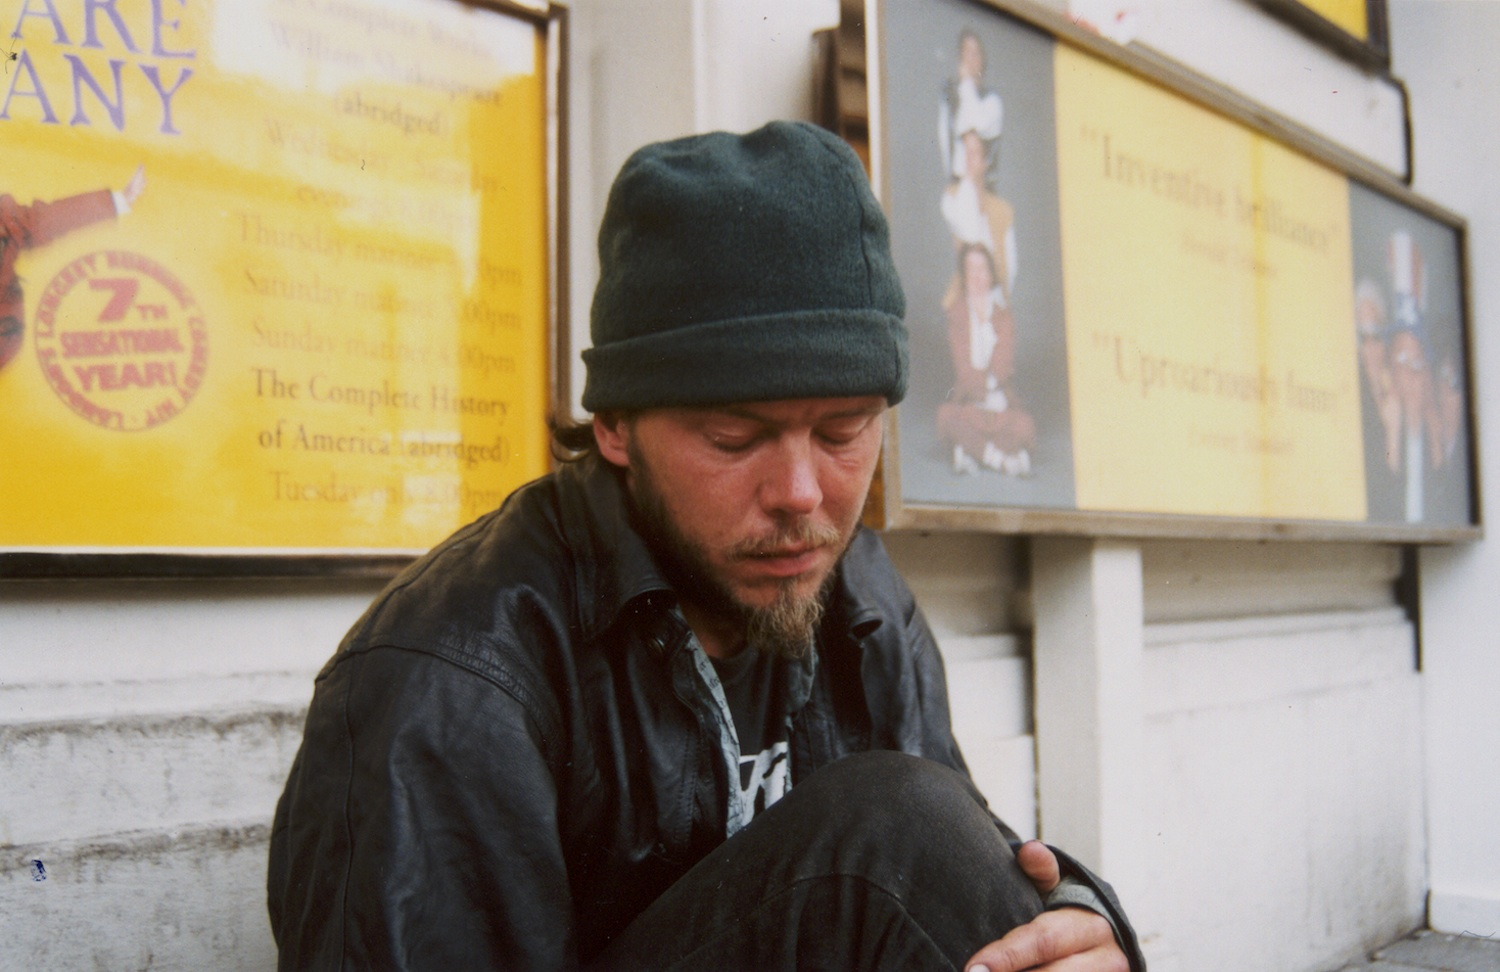 Homeless Mojo   When I arrived here I was shocked to see homeless people in old and dirty clothes on the streets.  I thought that this would be one of the differences between the First World and the Third World countries.  Why are there people in Britain living on the streets?  This is Mojo.  Mojo and I wonder why the government takes more care of foreigners - asylum seekers - than the British people living on the streets.  Isn't it our responsibility to try and advocate for their rights?  Mojo is just like you and me and he deserves his rights.  (c) Onesmus / Transparency / PhotoVoice